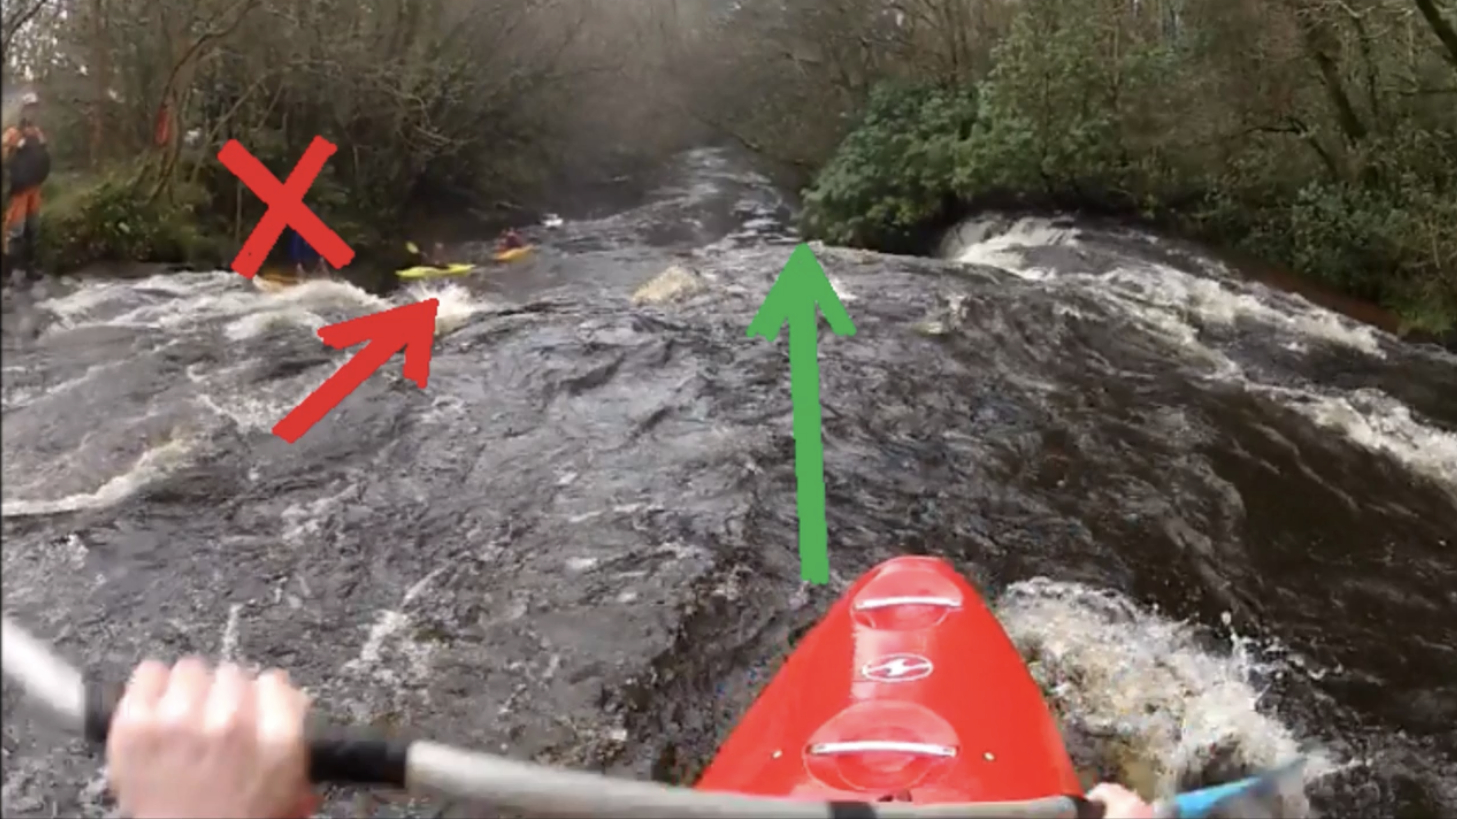 Clare Glens Top Drop River Guide showing lines to take. Created by University of Limerick Kayak Club.